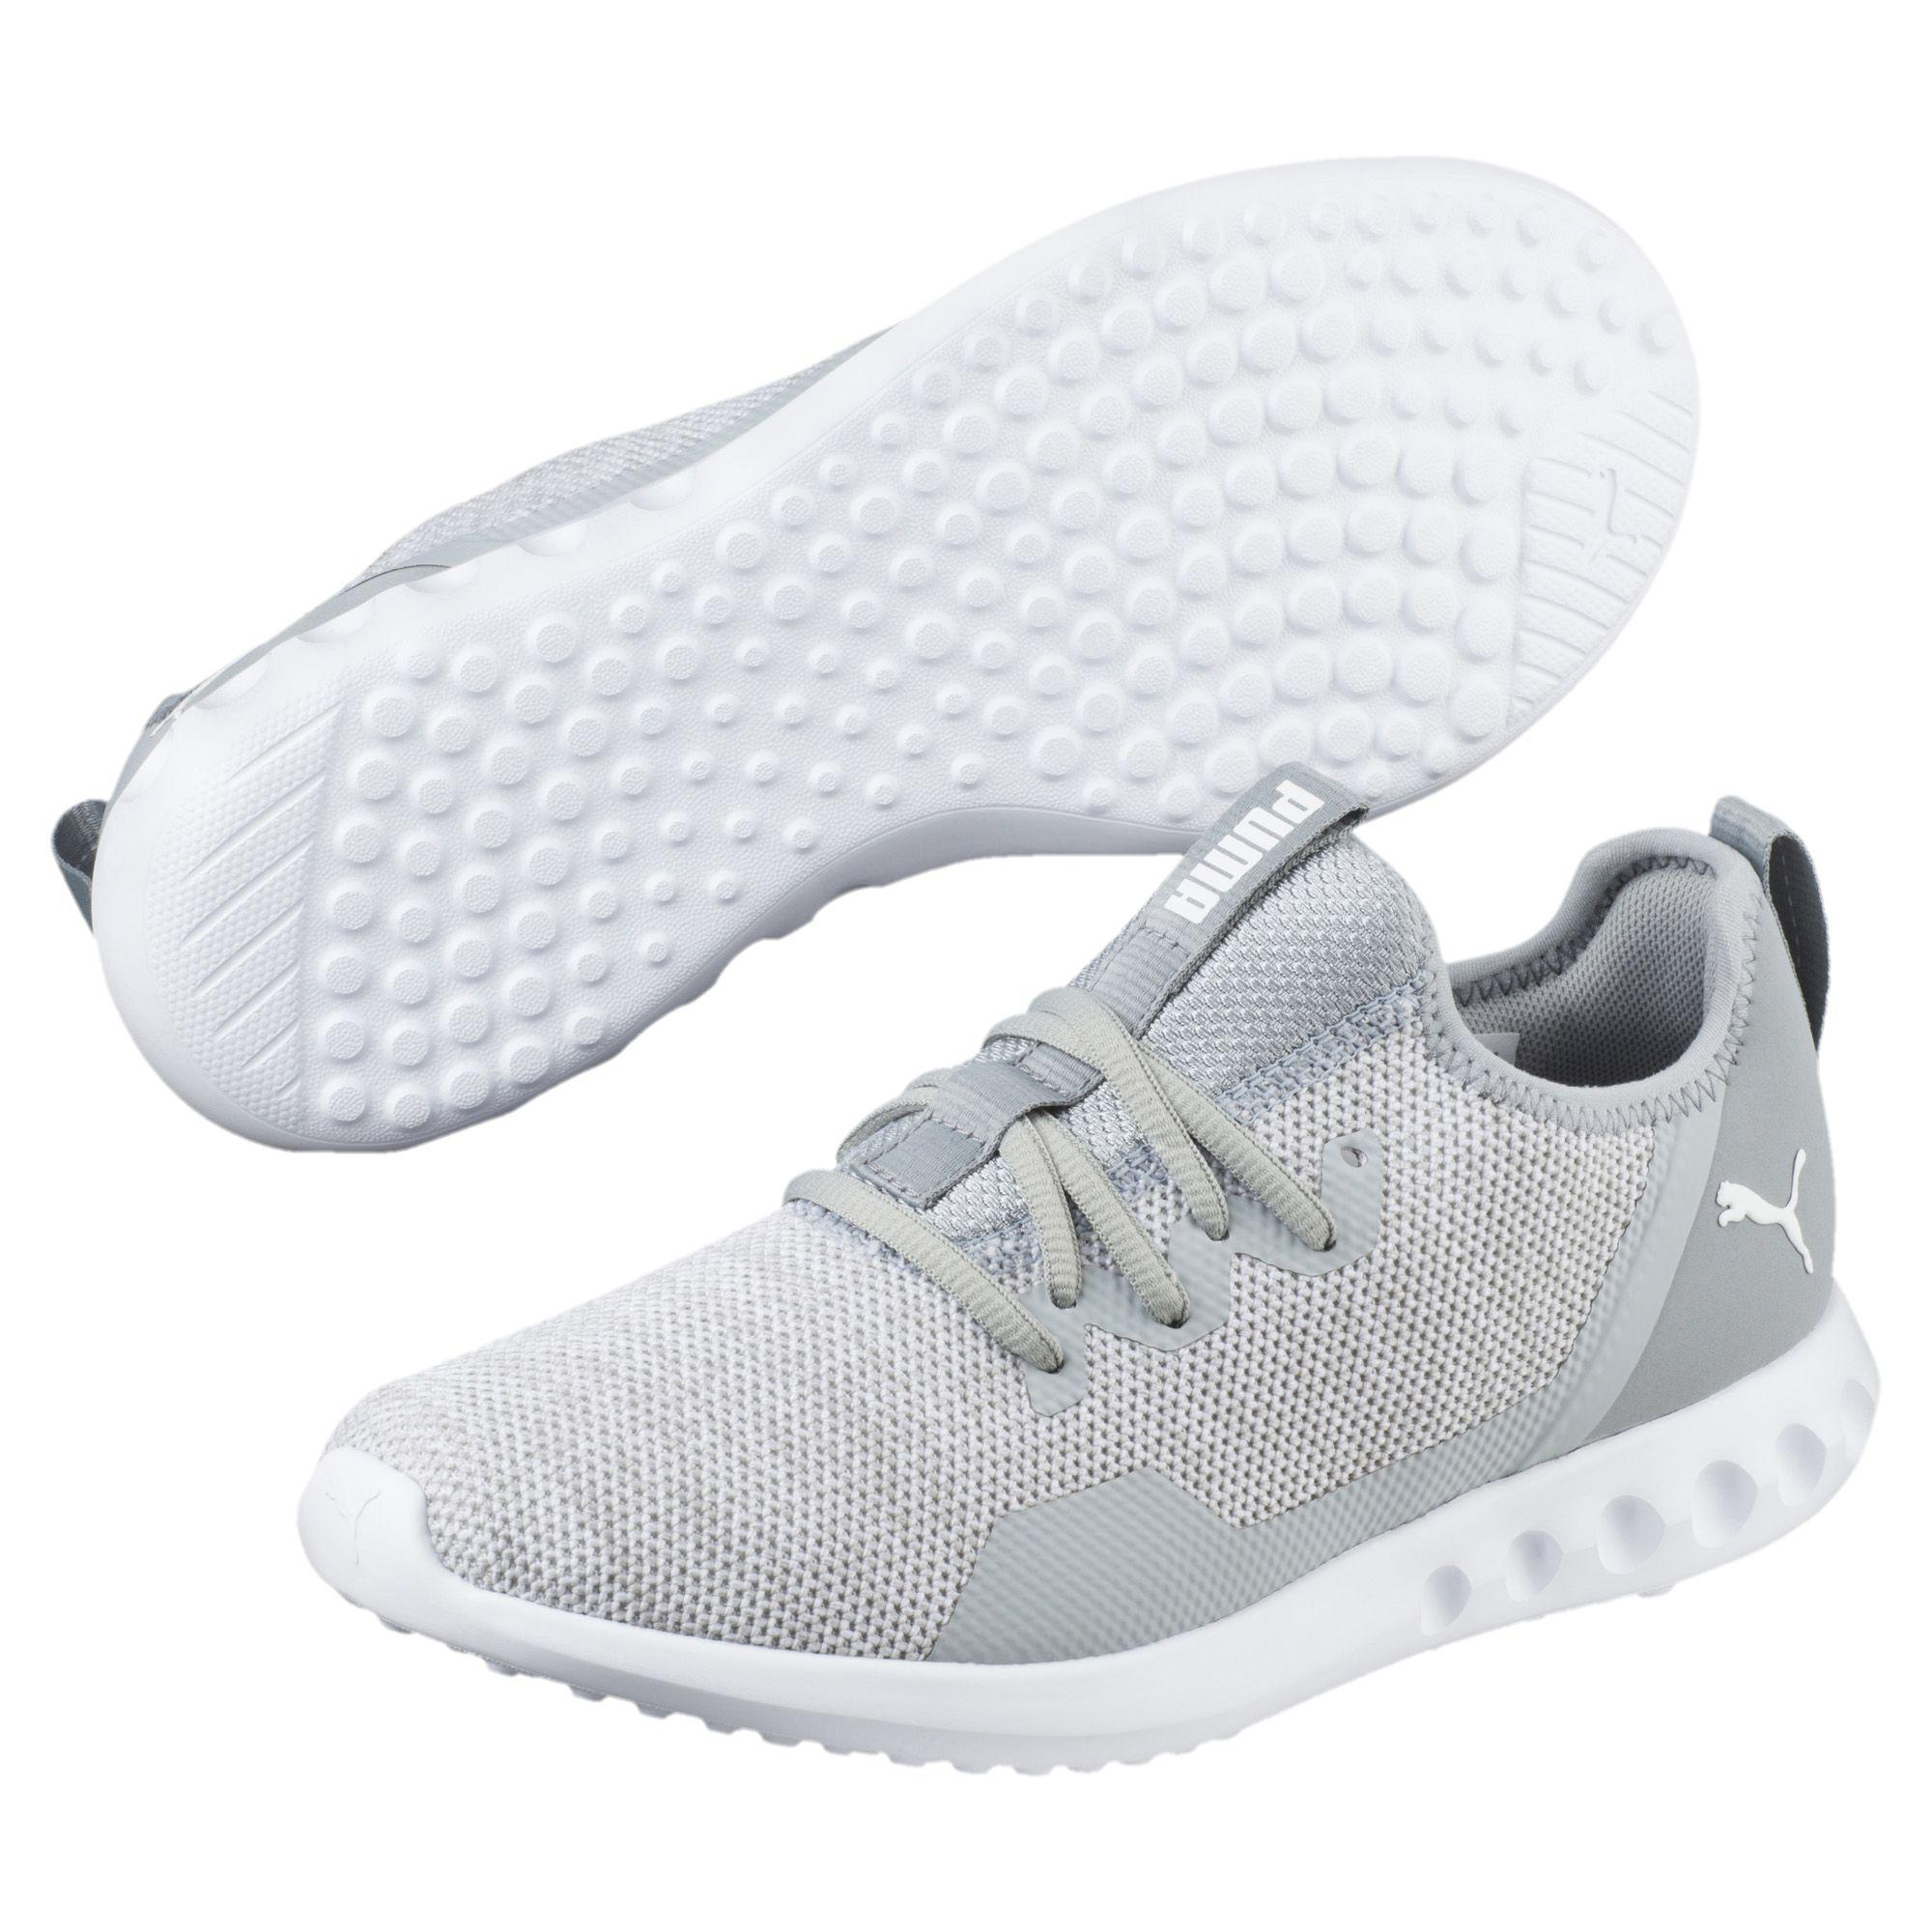 6e4d0332612 Lyst - PUMA Carson 2 X Knit Women s Running Shoes in White